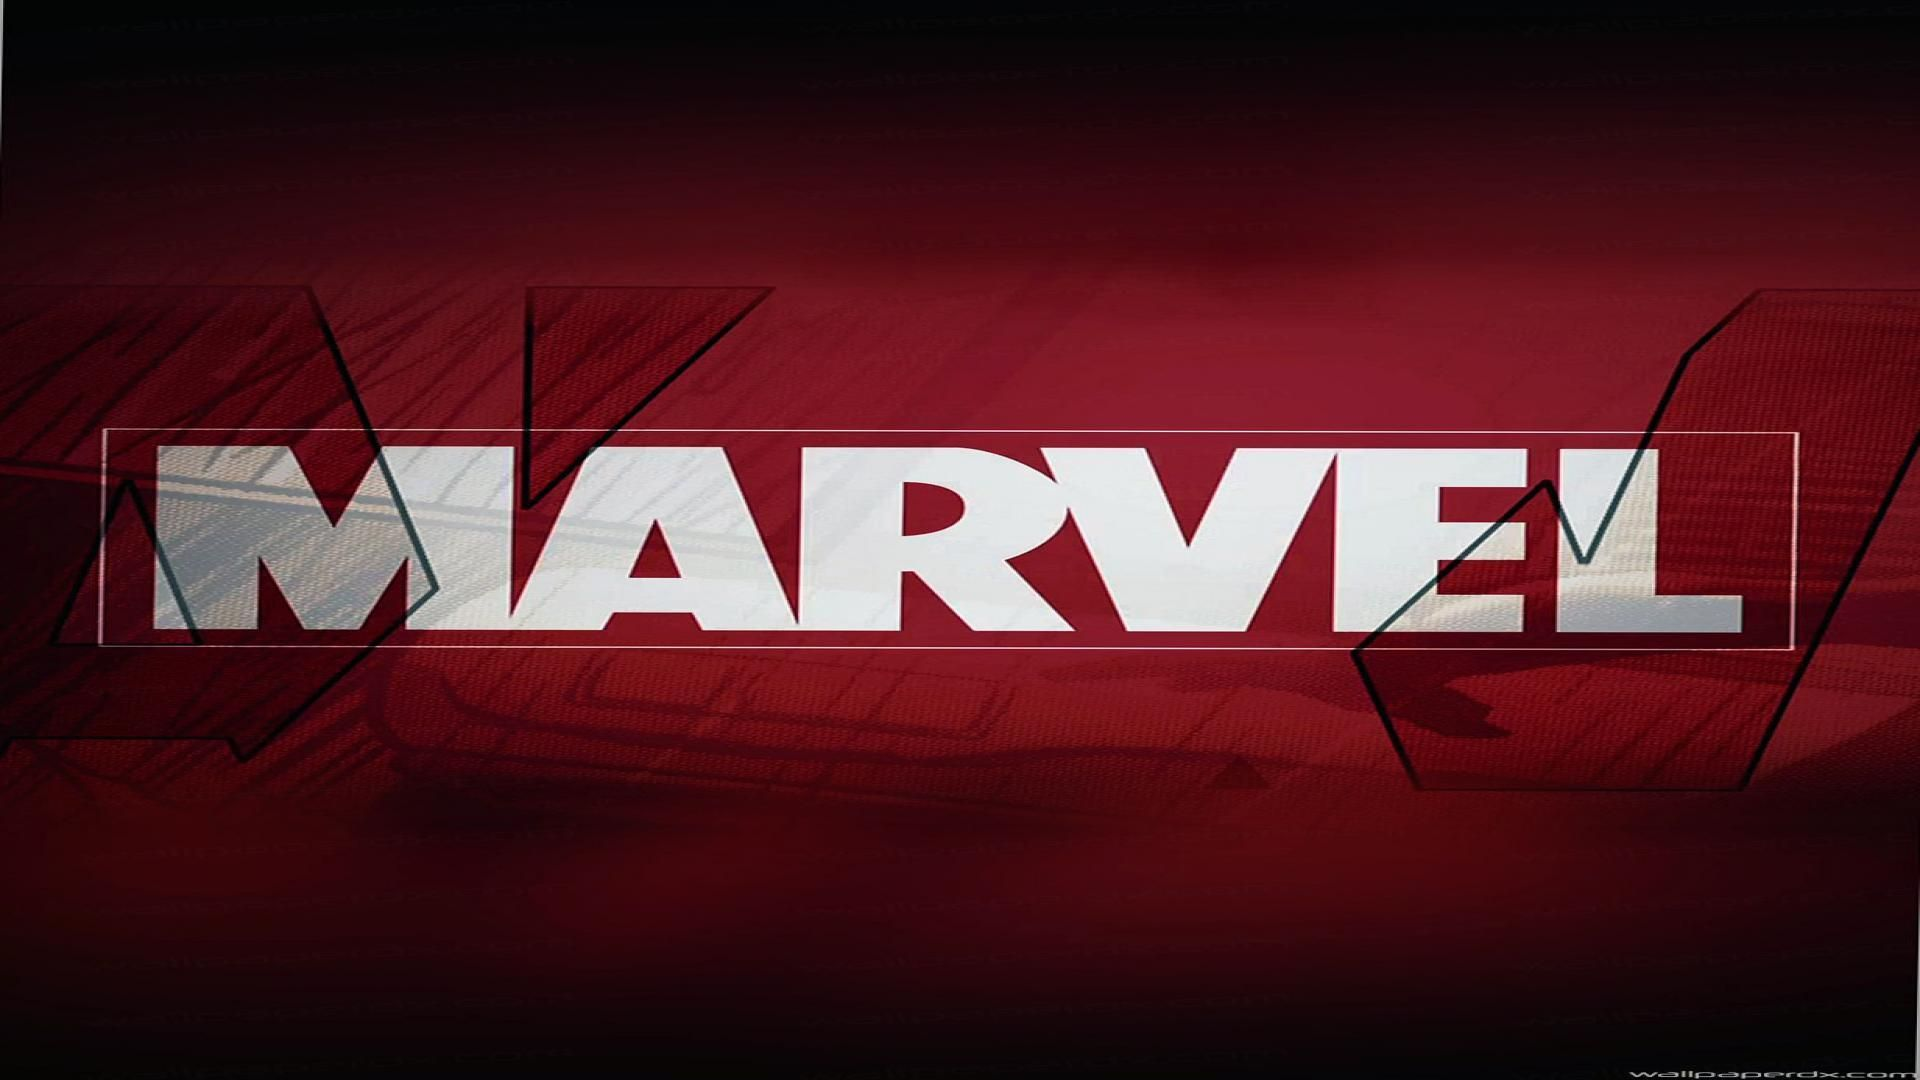 Marvel Logo Wallpapers Top Free Marvel Logo Backgrounds